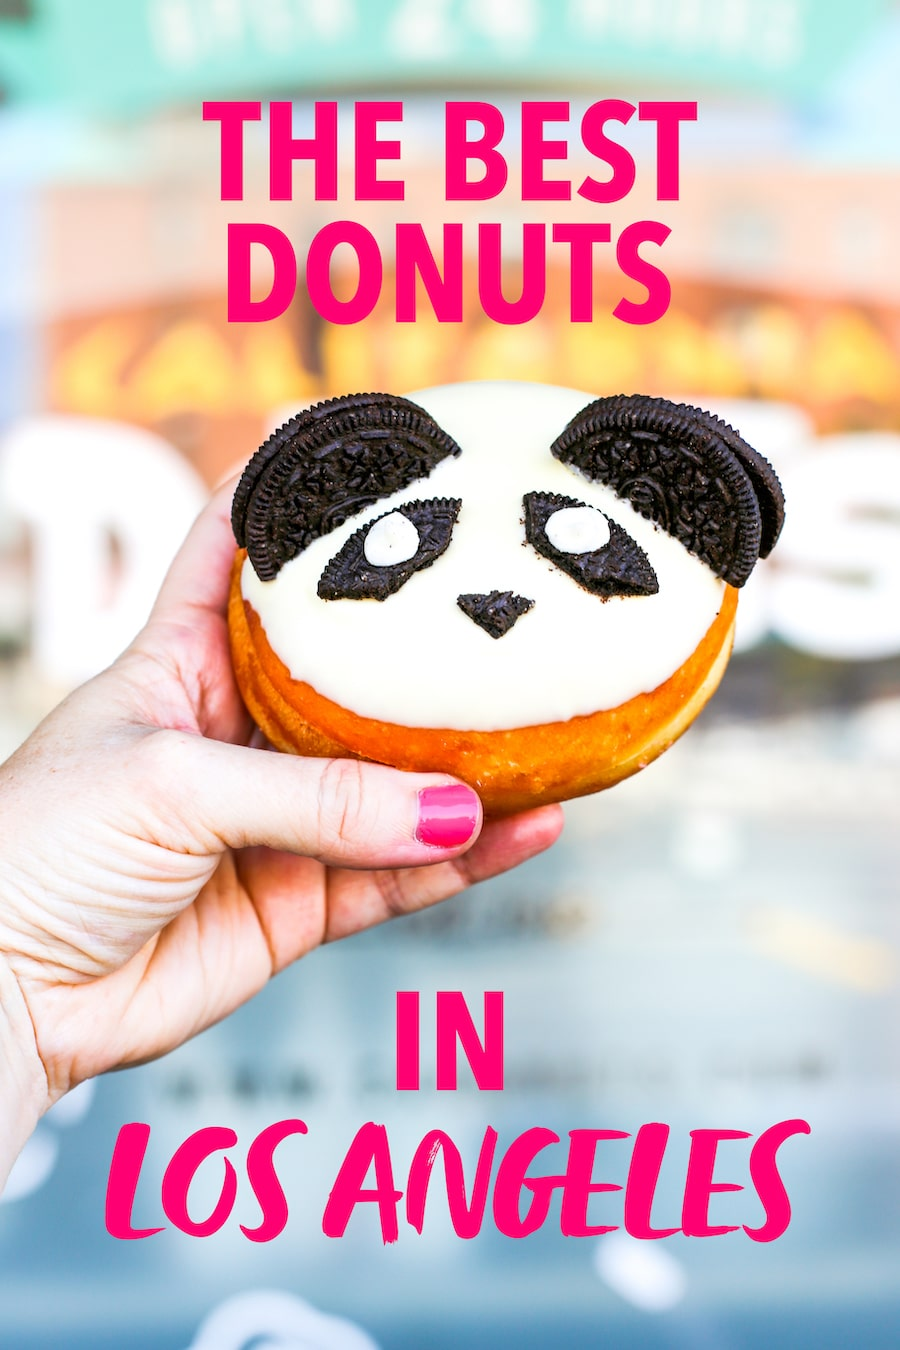 The Best Donuts in Los Angeles